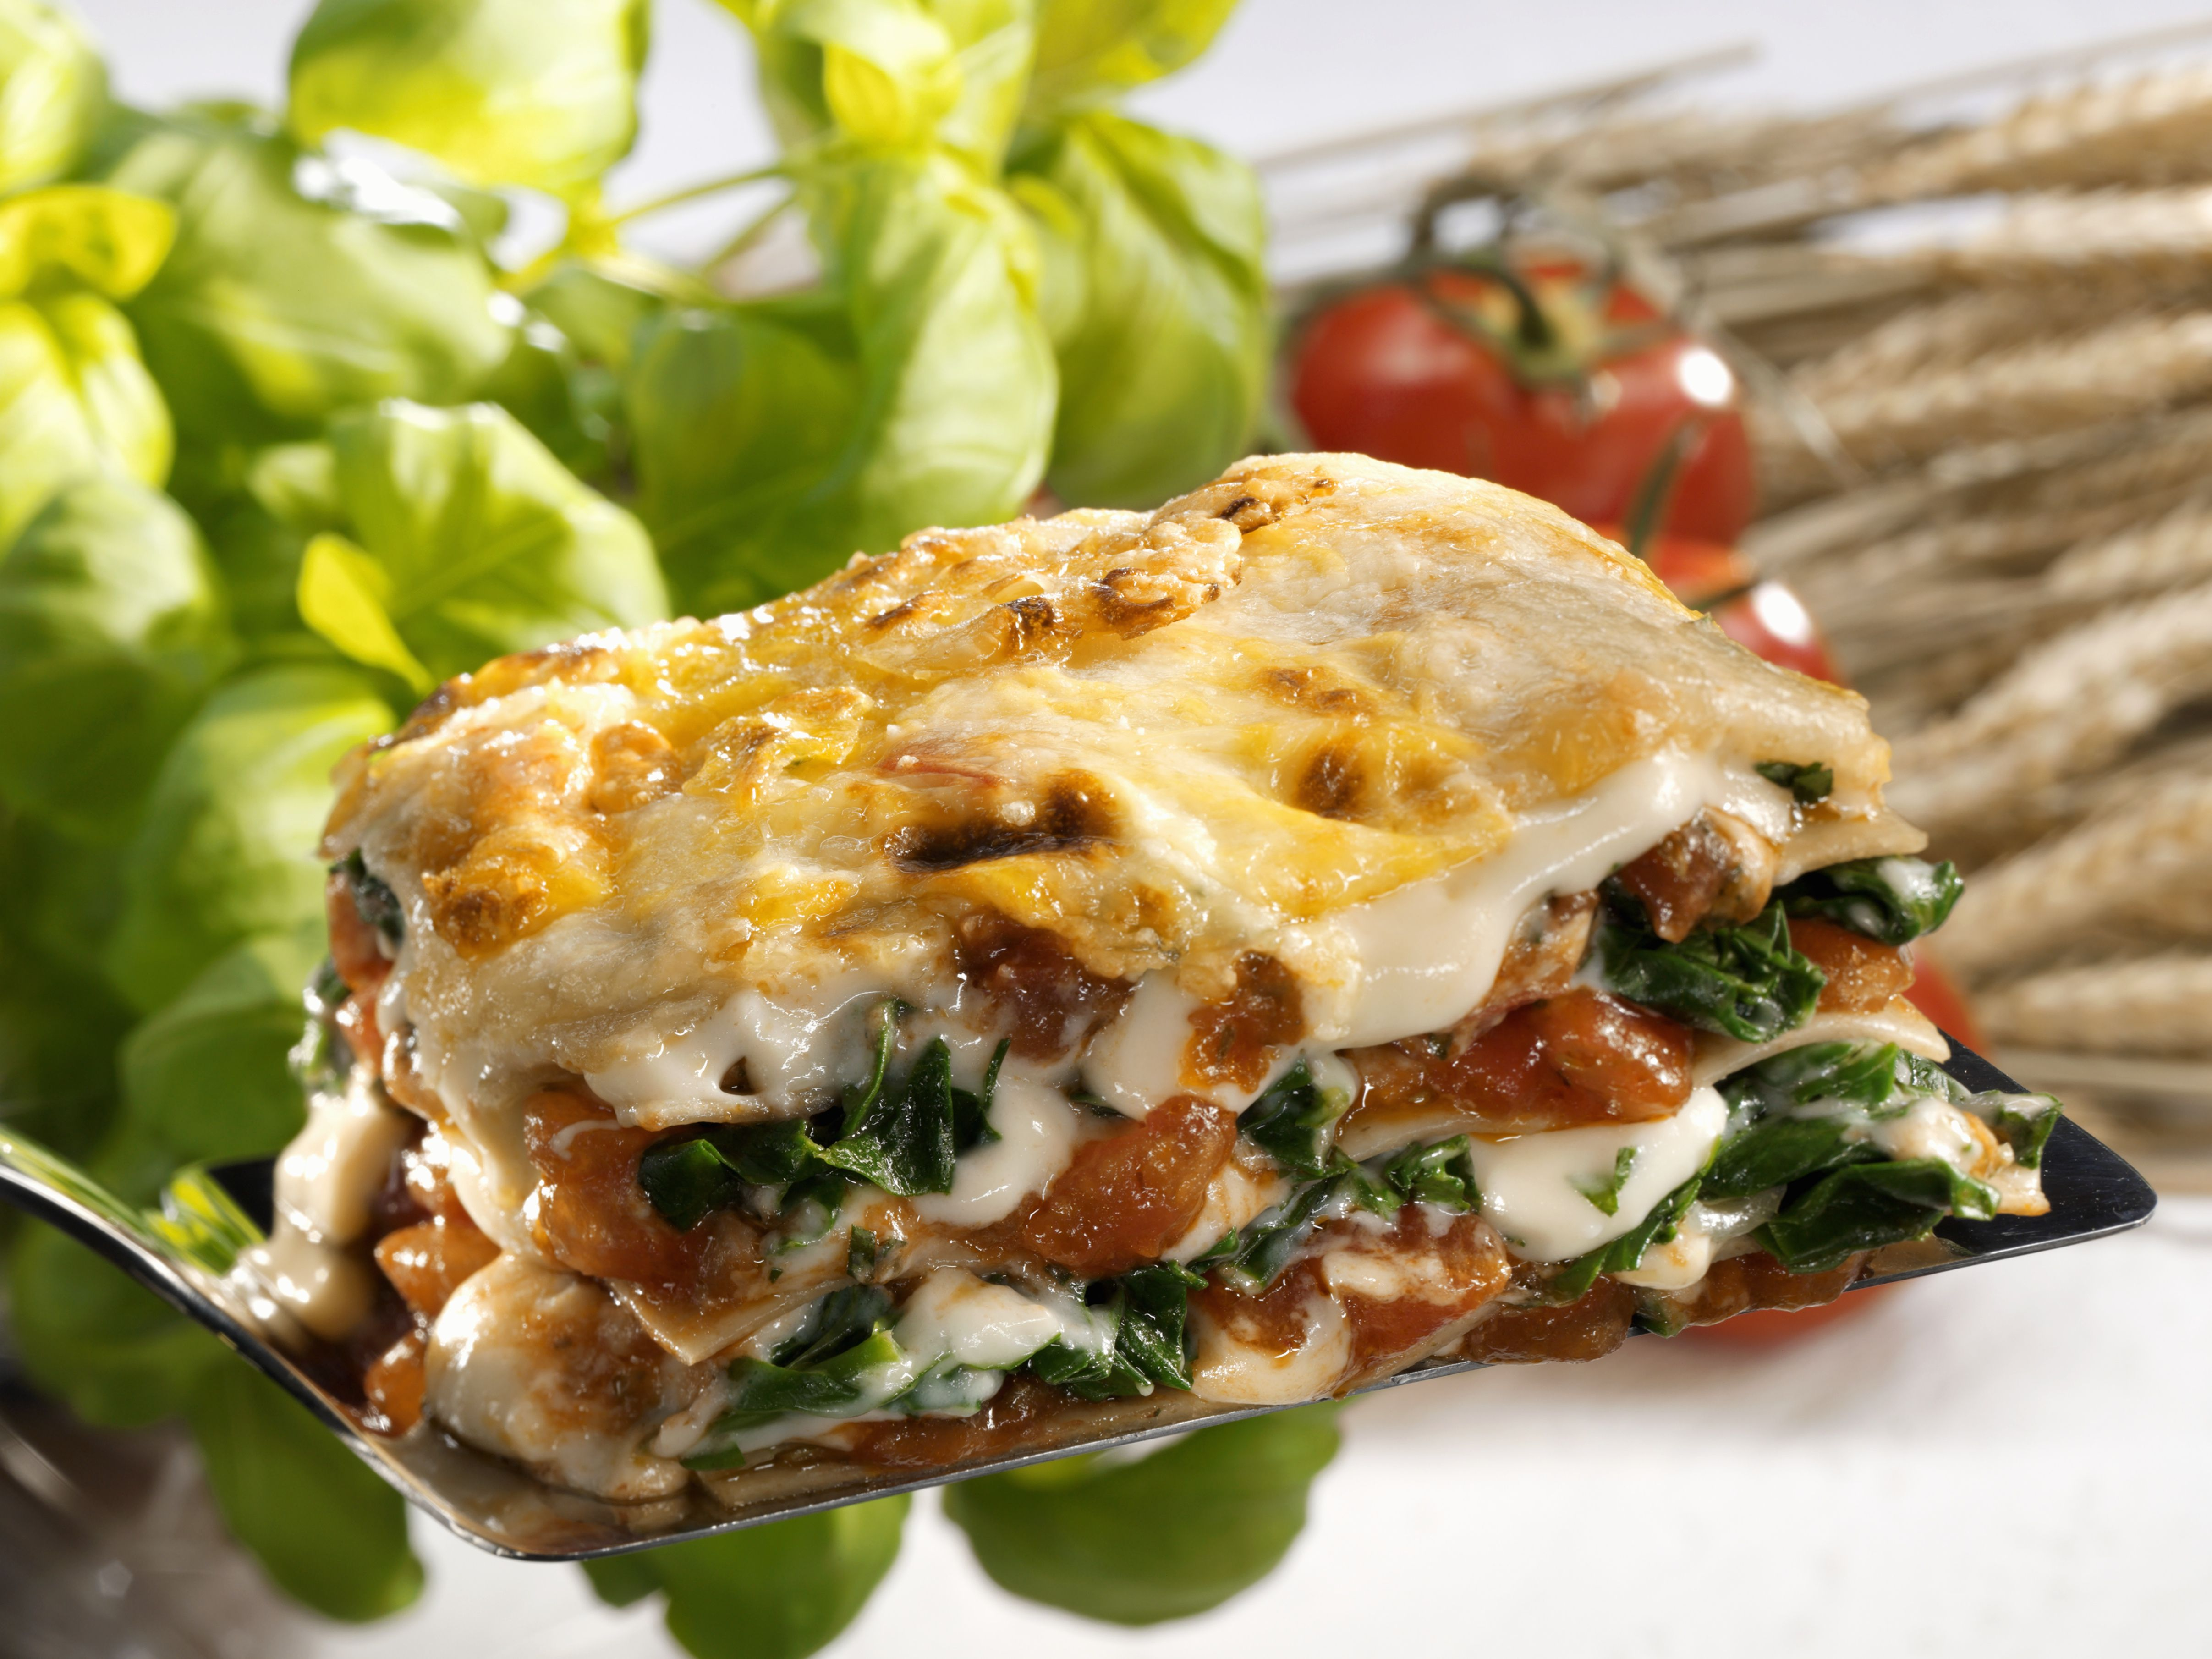 spinach and beef lasagna with ricotta cheese